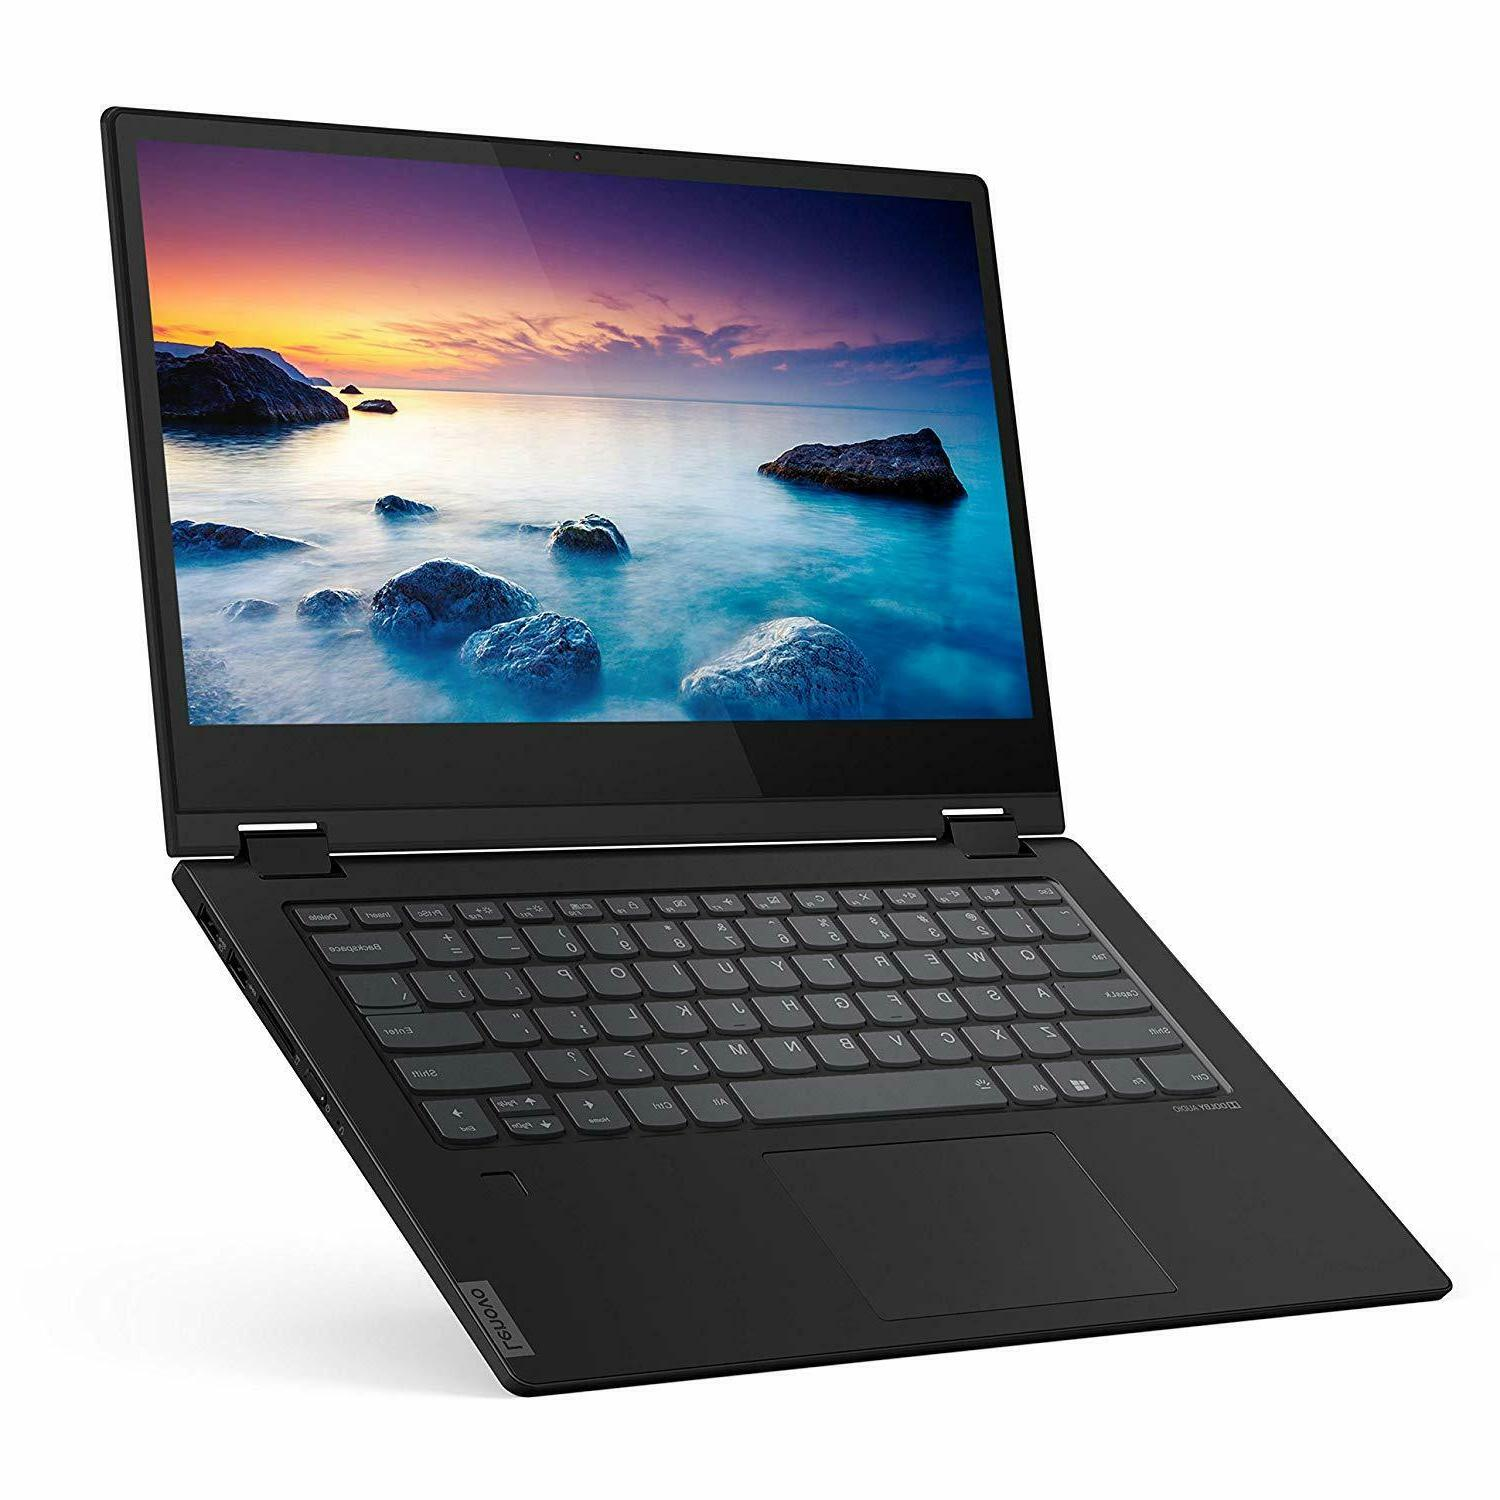 2 in 1 Convertible Laptop 14 Inch Touchscreen or Tablet Comp